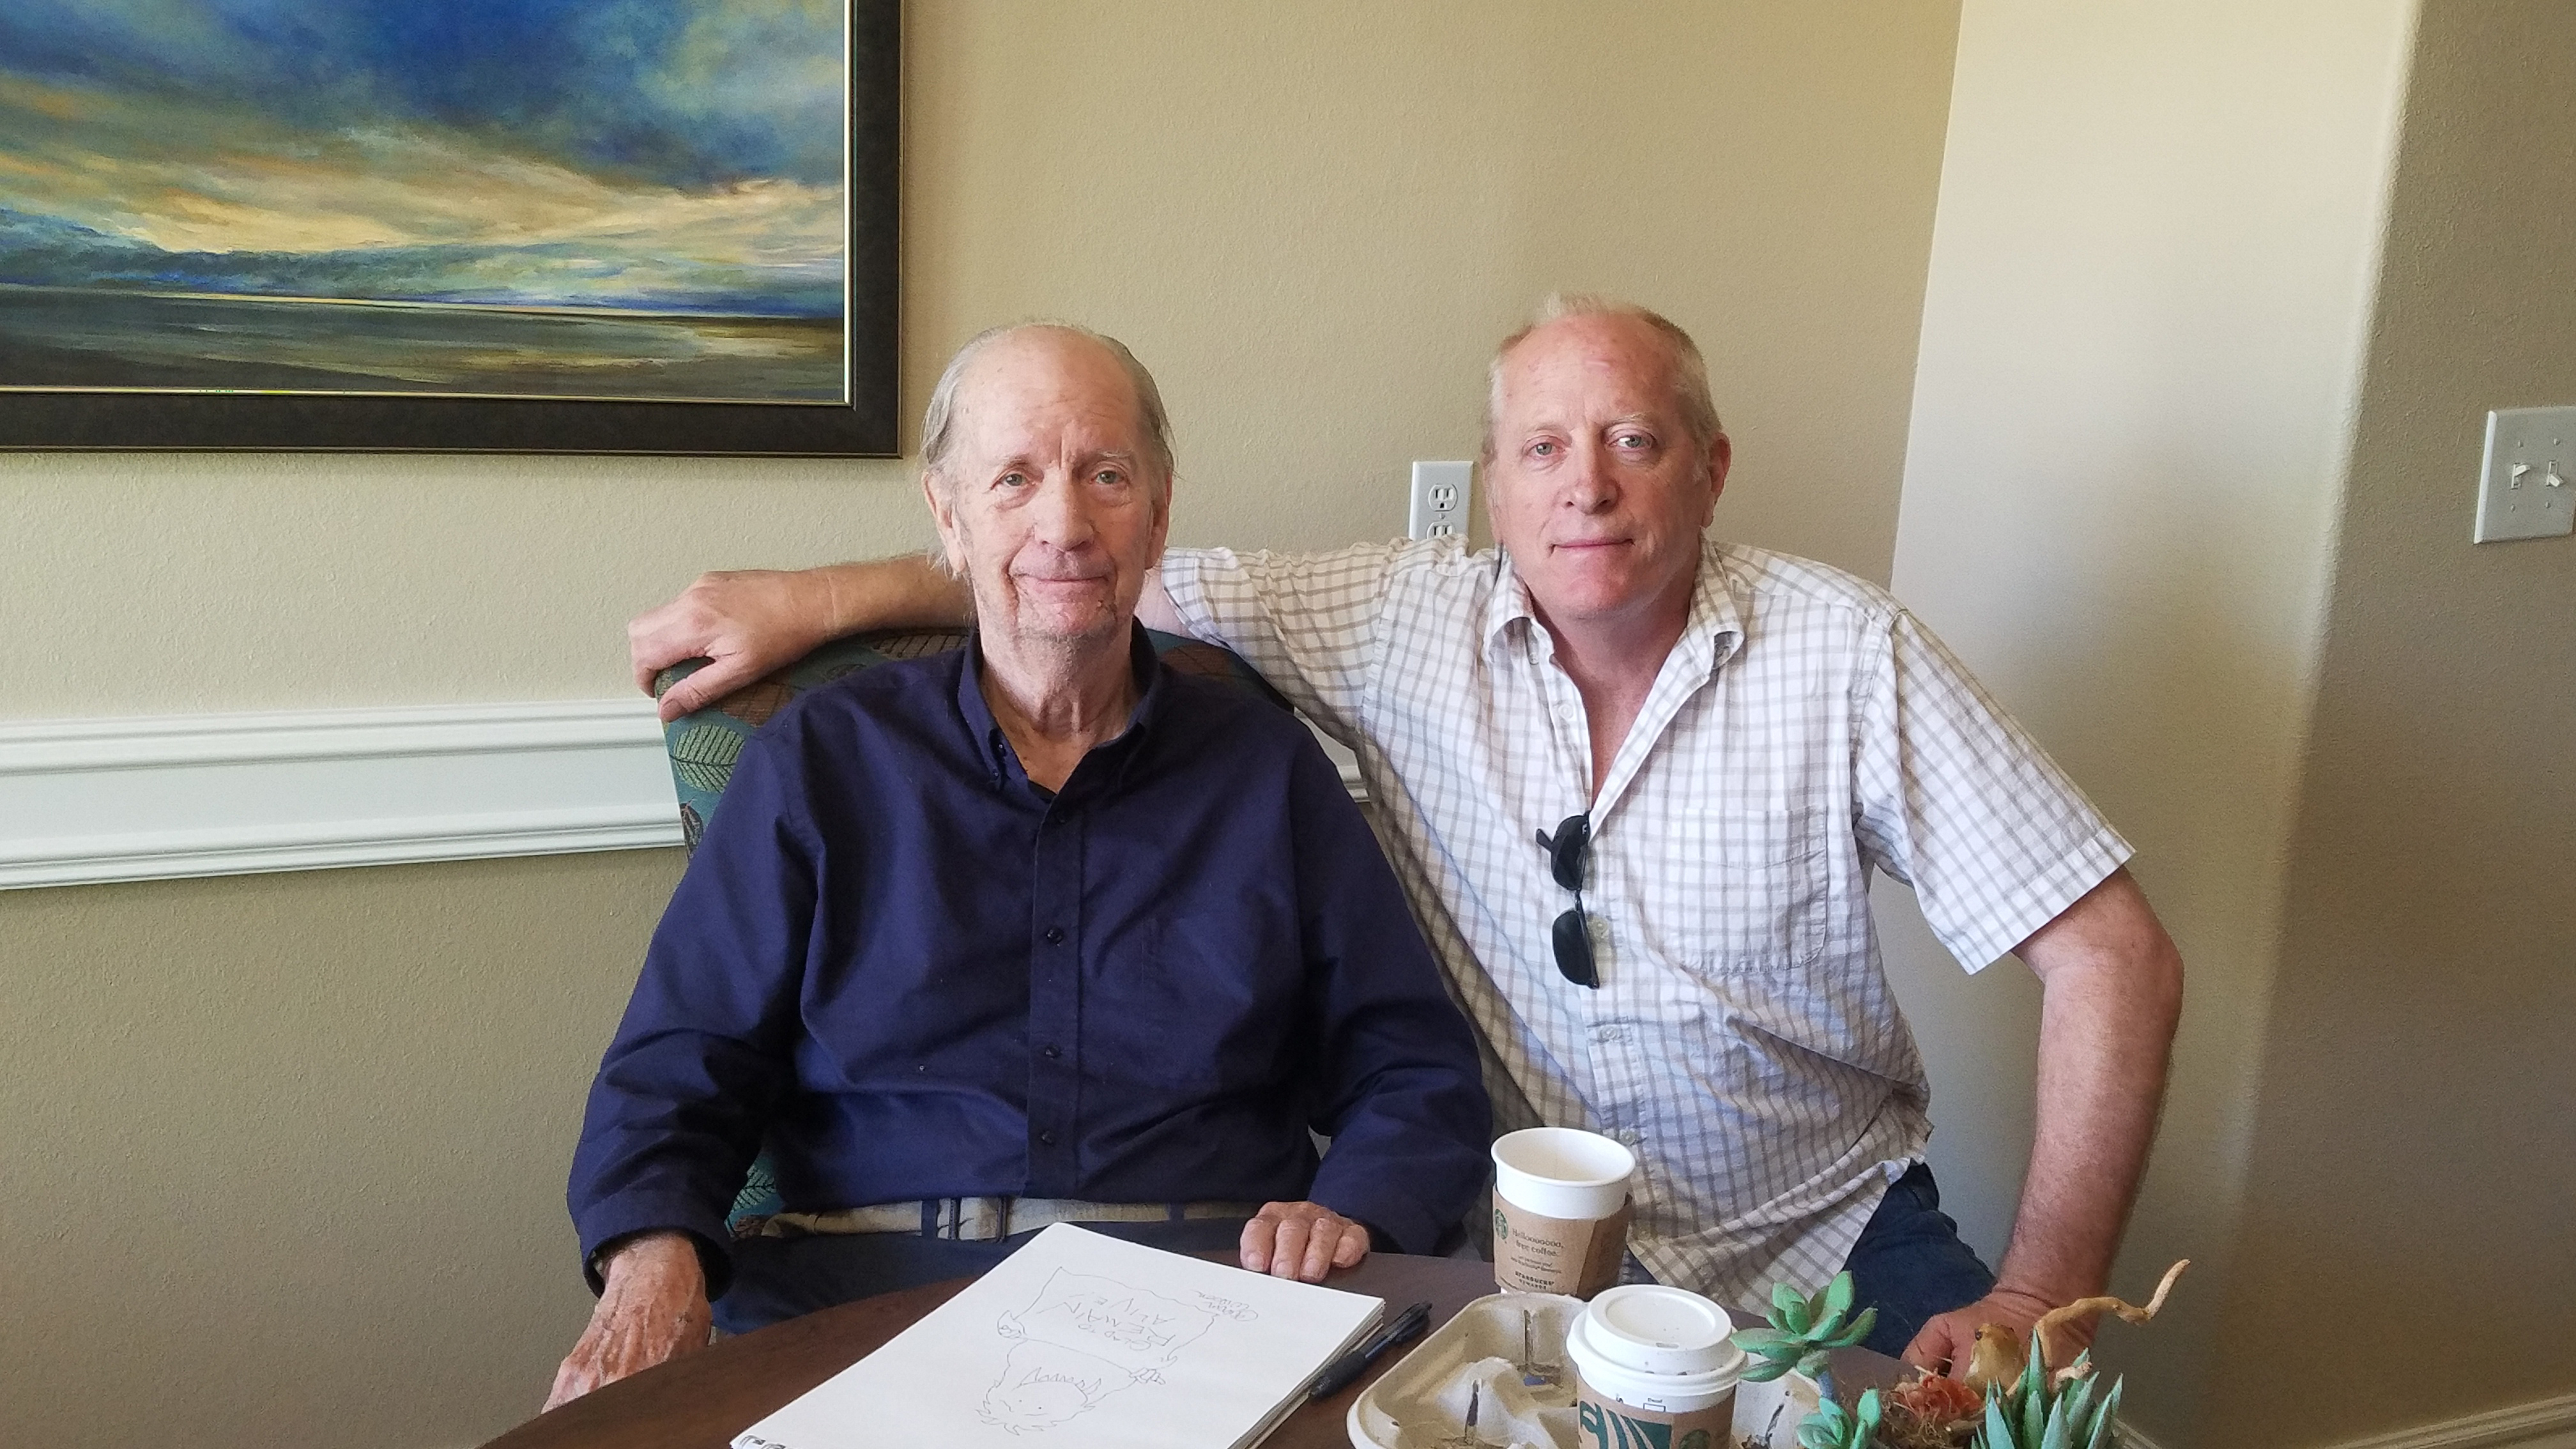 Gahan Wilson earlier this year with his stepson, Paul Winters, at the memory care facility in Arizona.